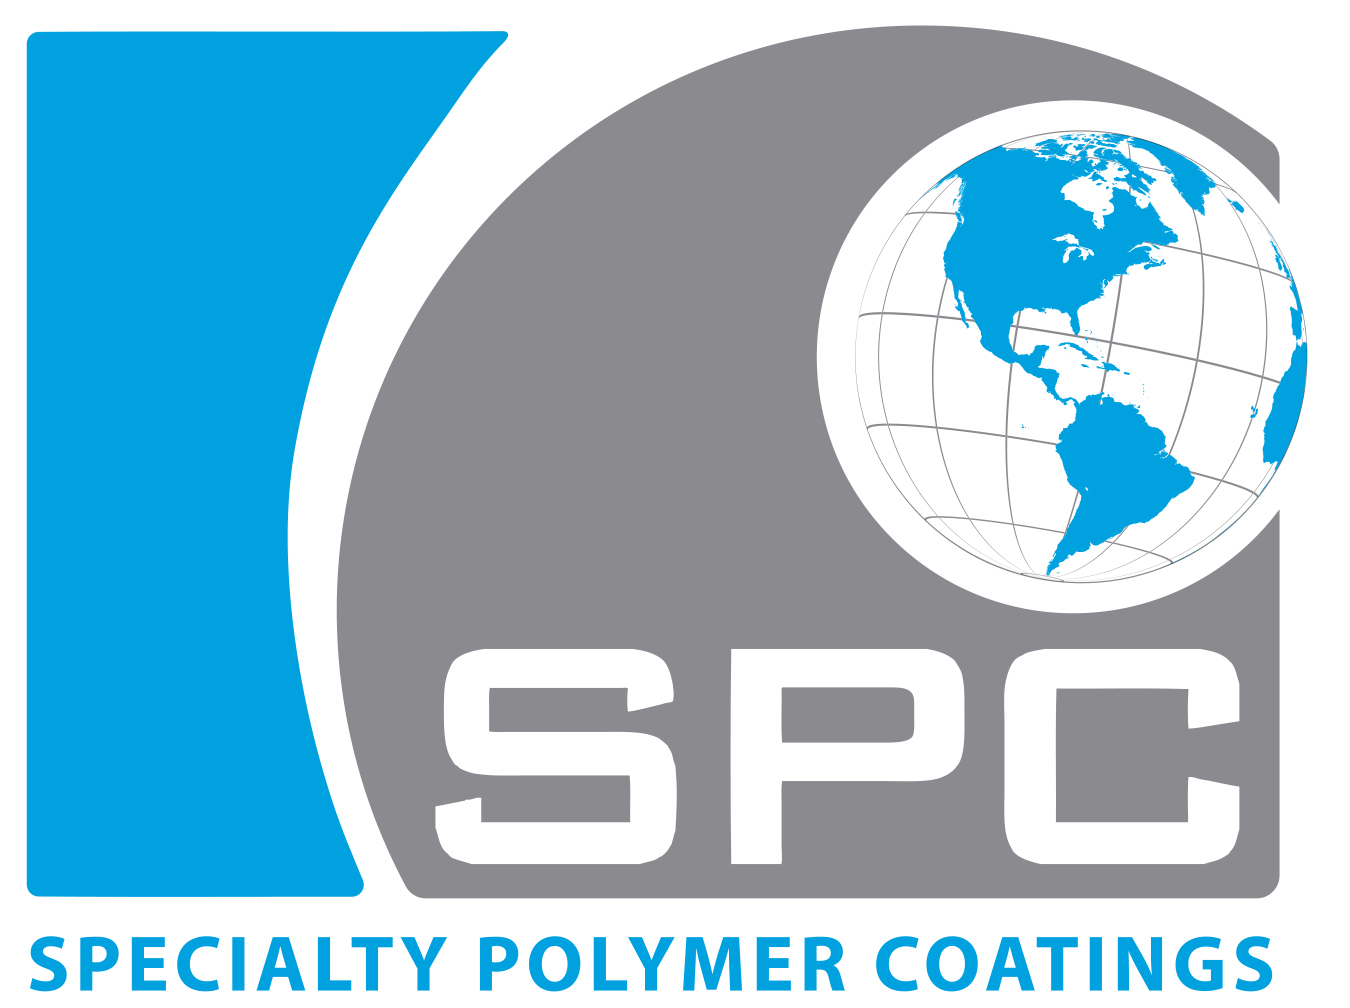 Specialty Polymer Coatings Inc